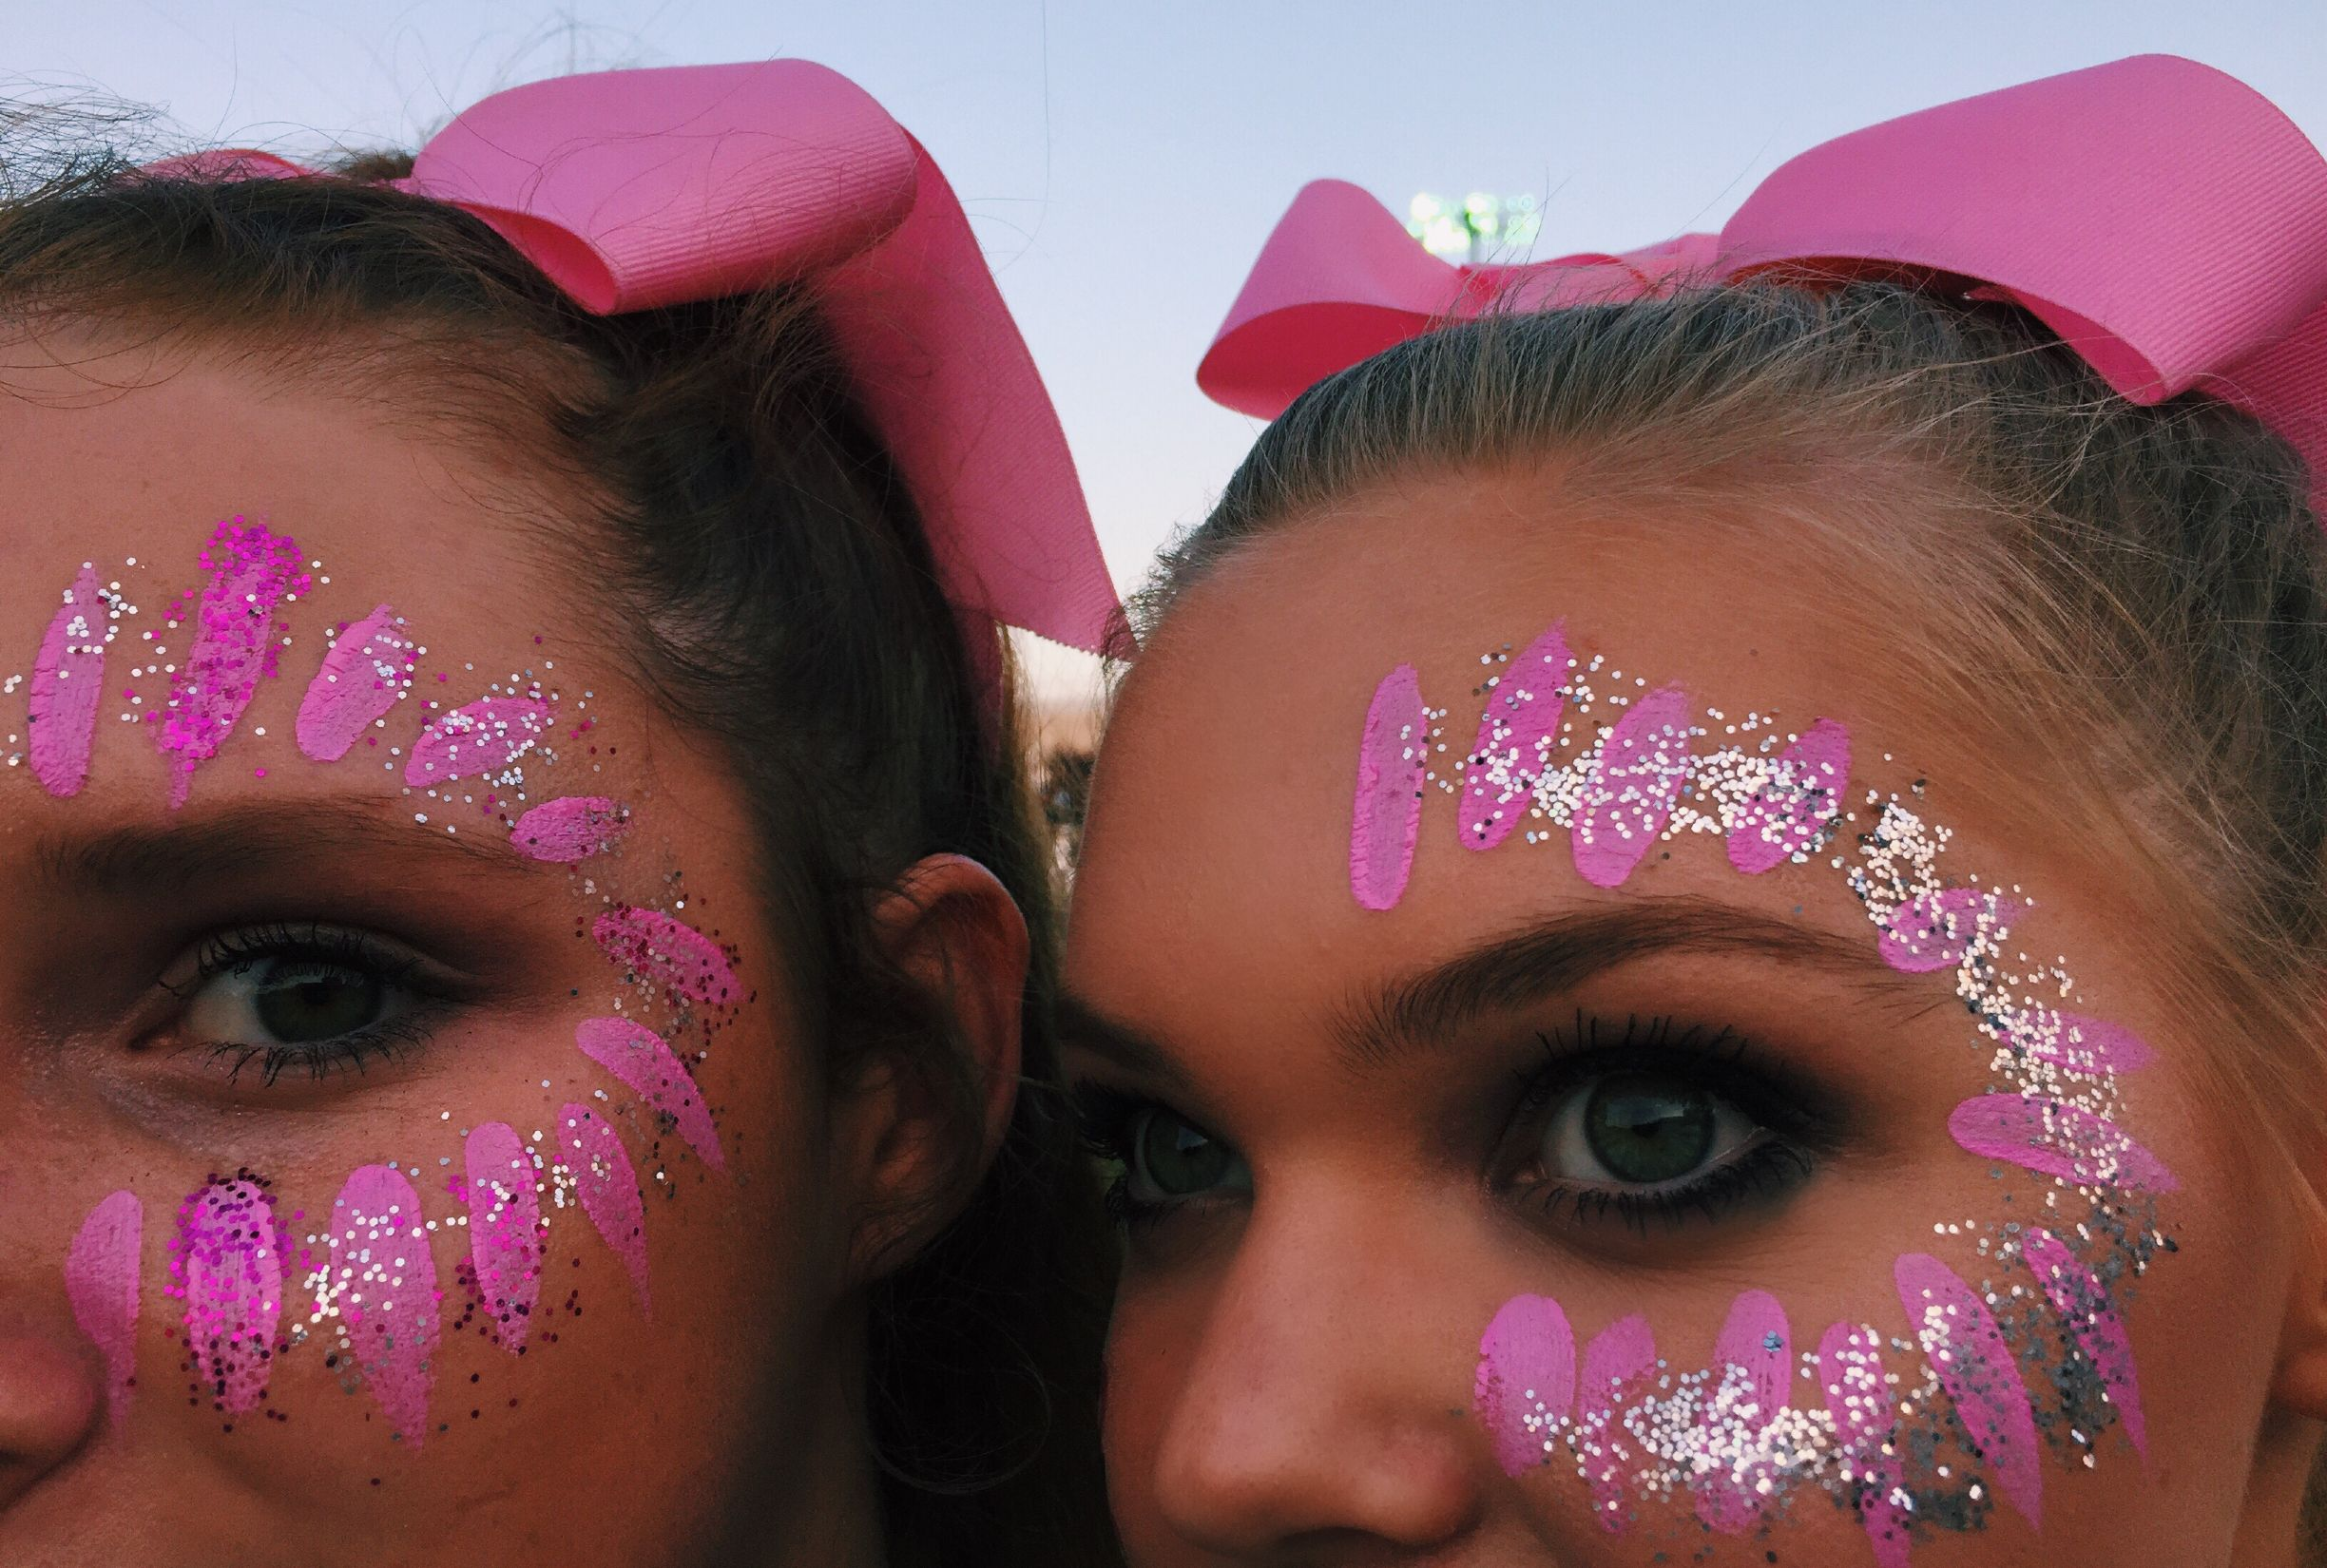 Face paint and glitter for the big Pink Out football game